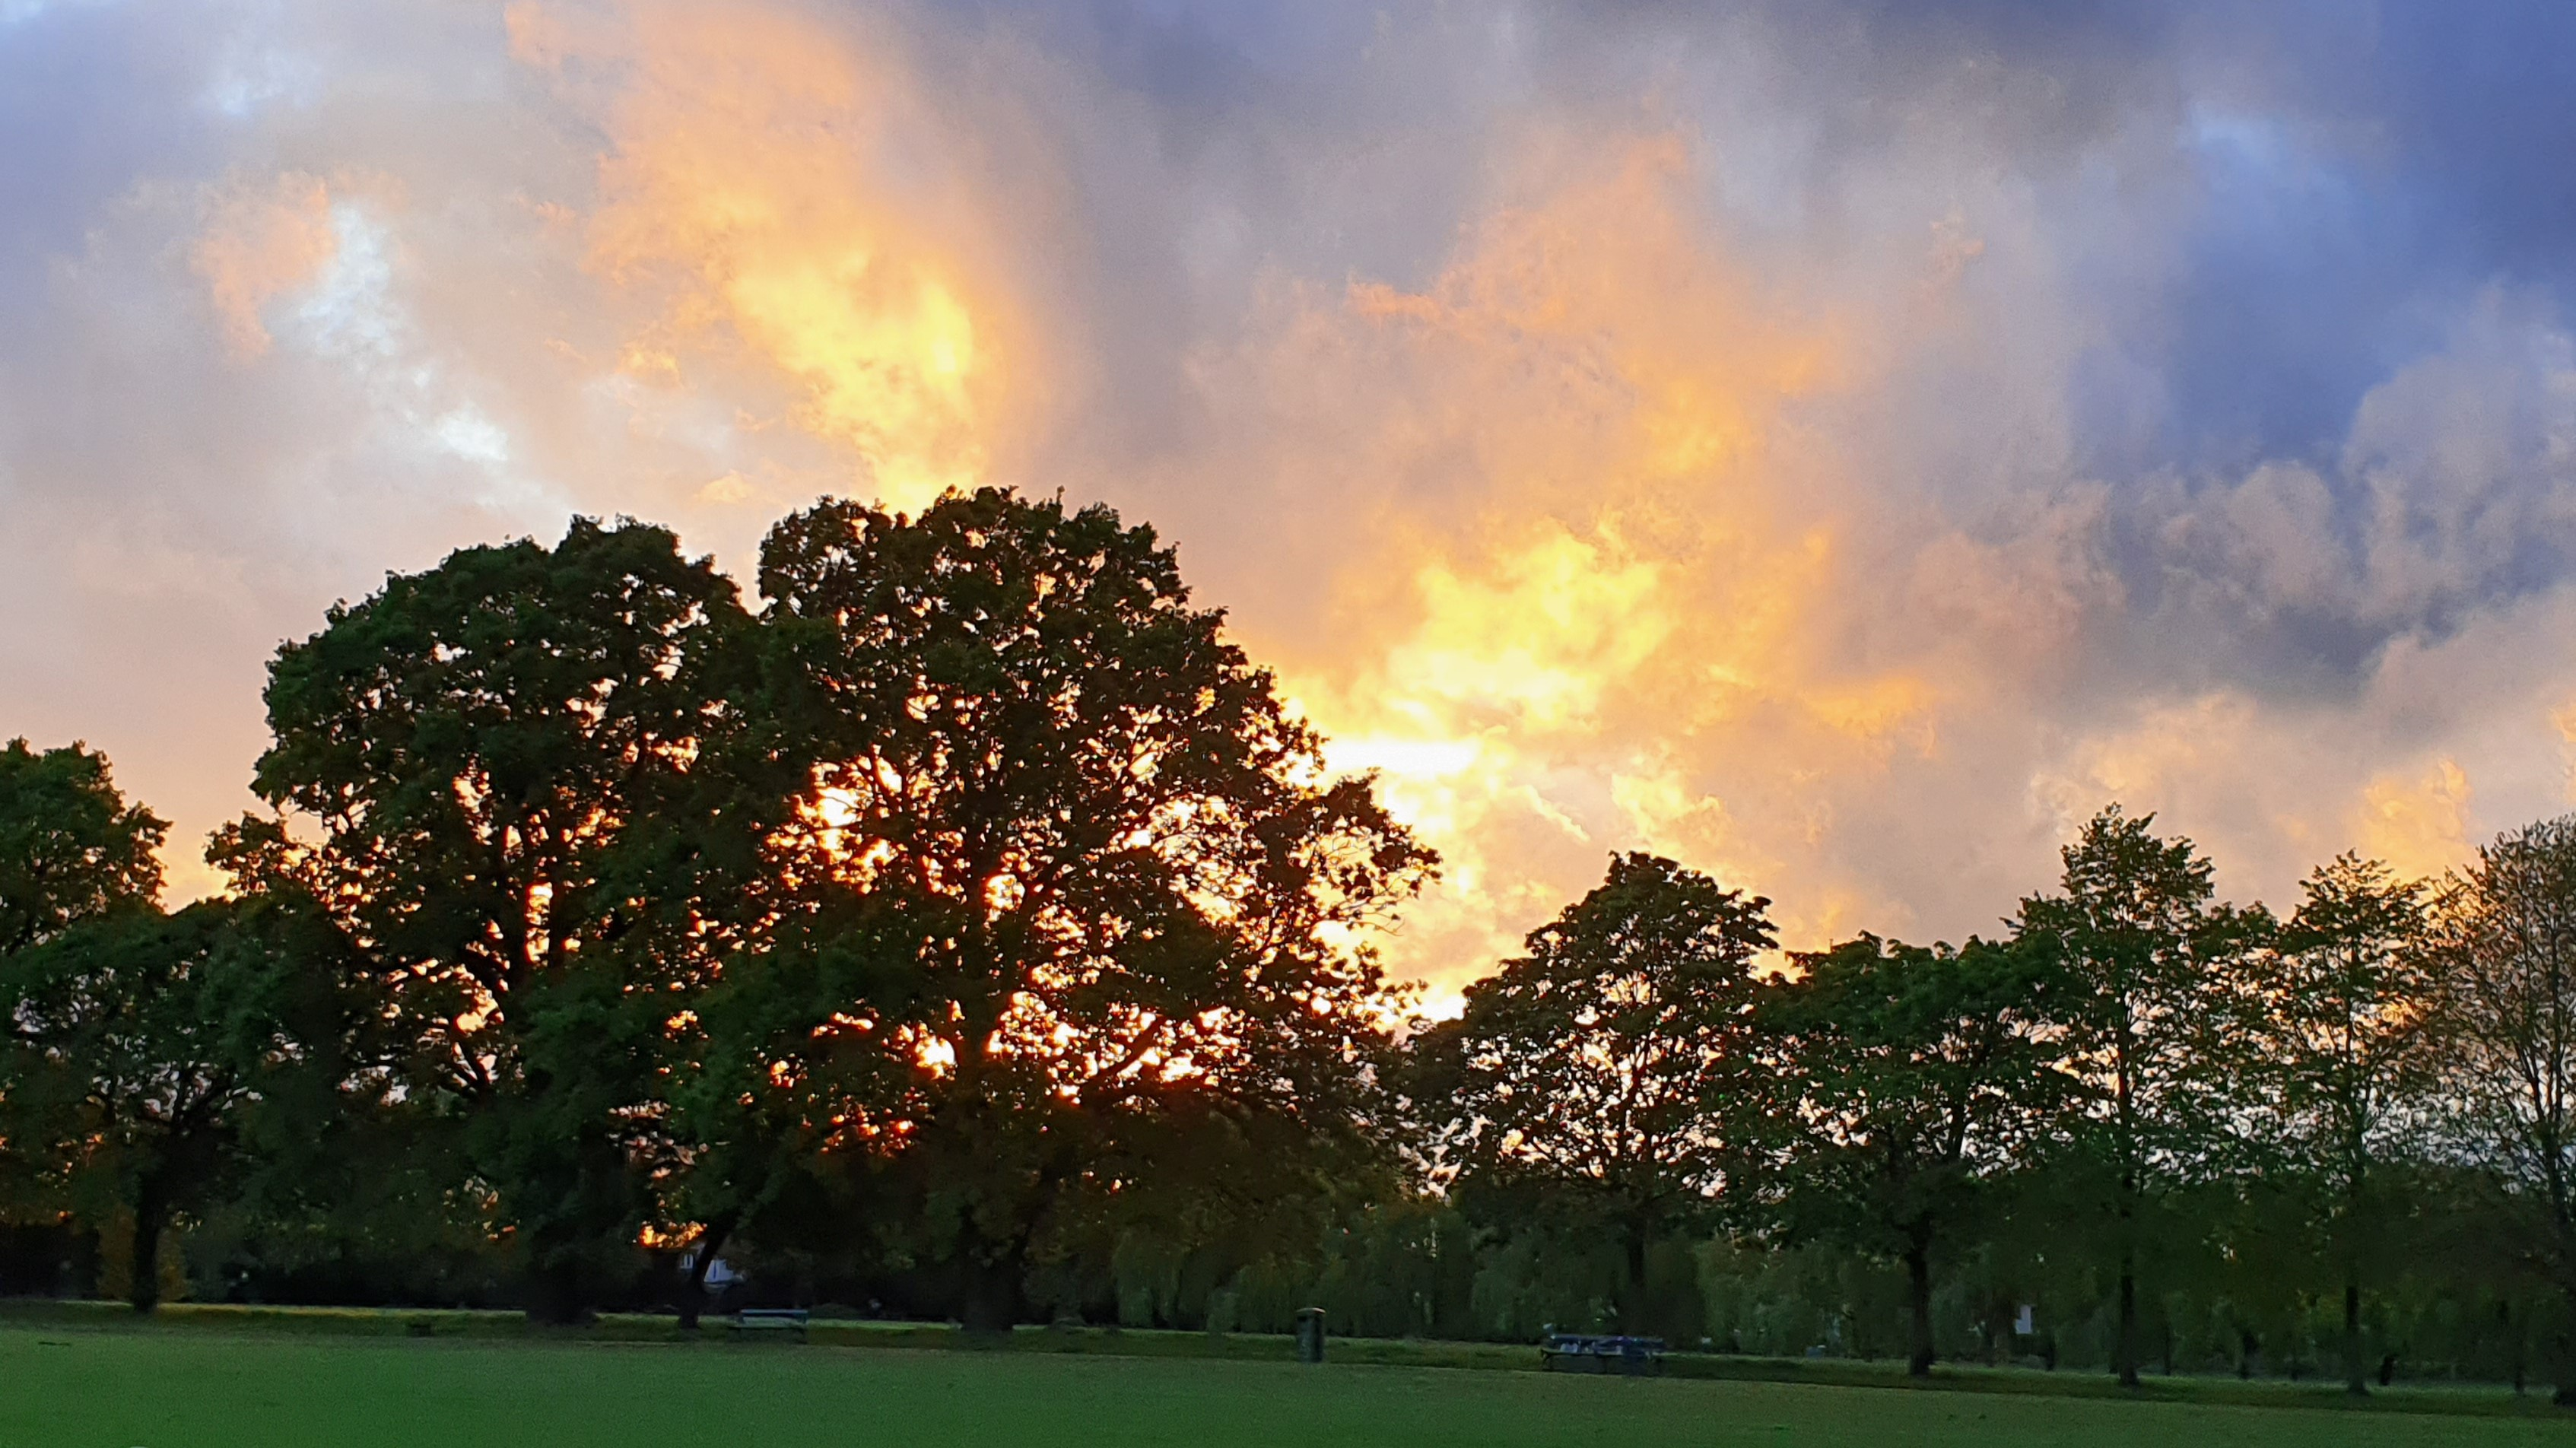 sunset in harold wood park